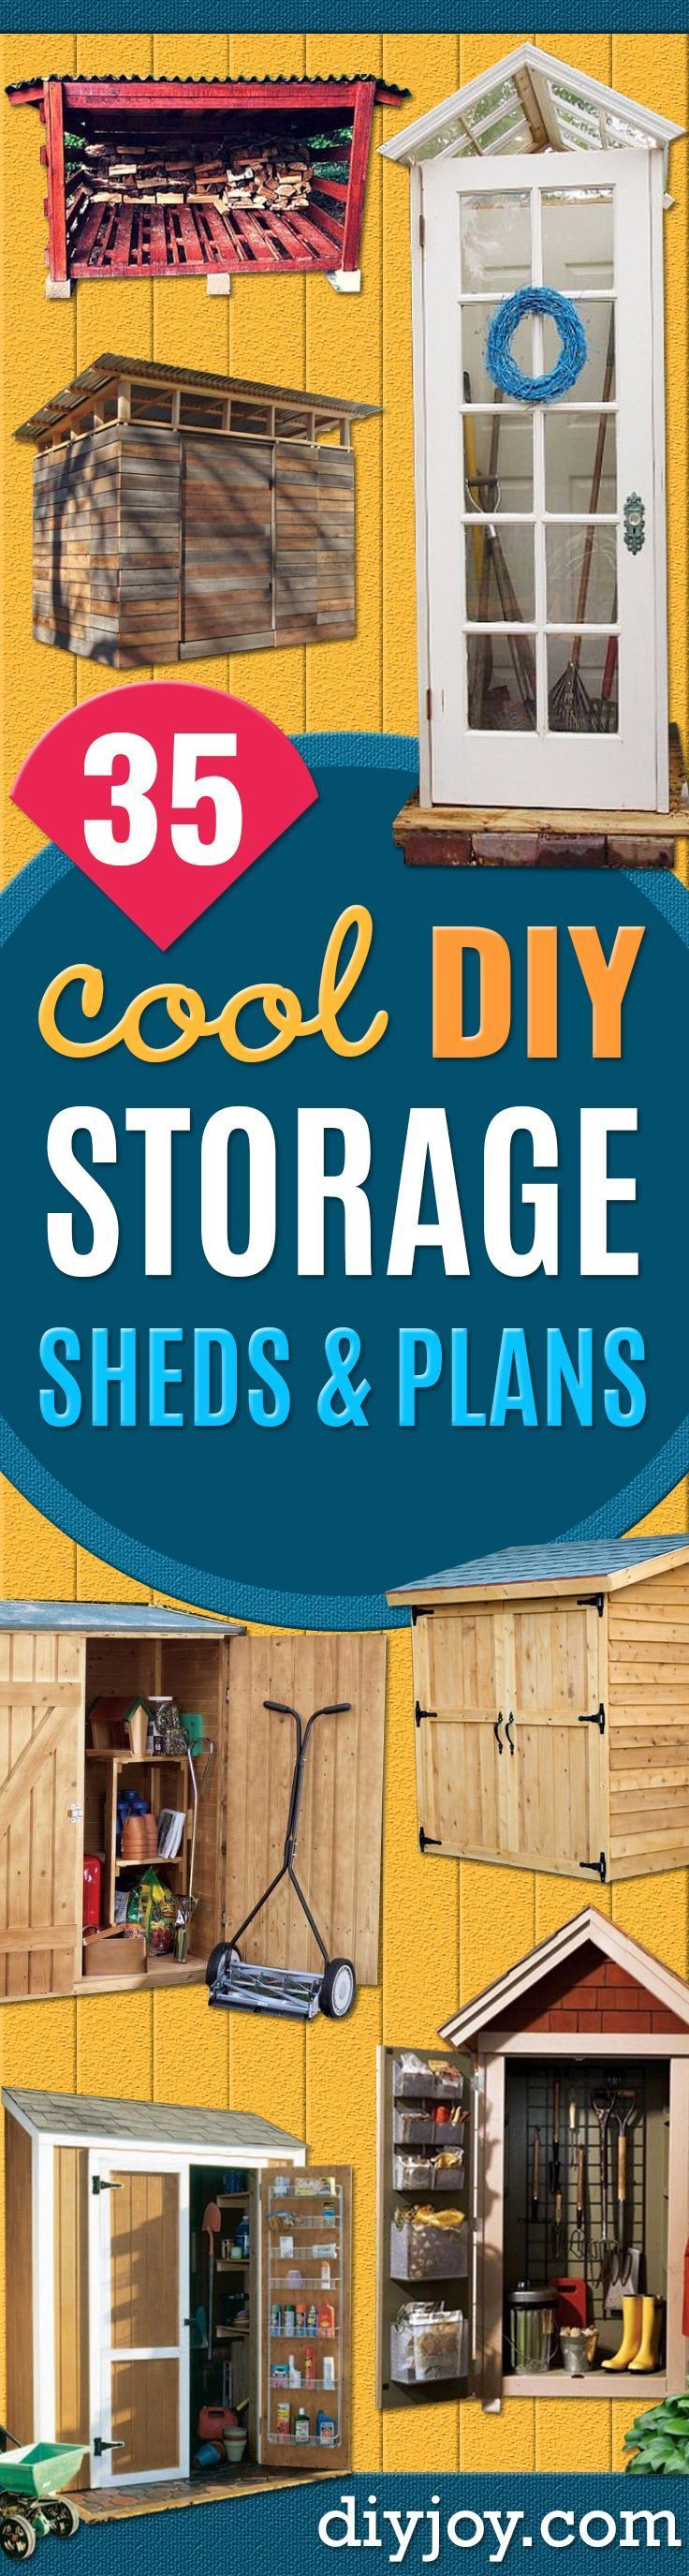 Your home for vacation amp prosperity - 31 Diy Storage Sheds And Plans To Make This Weekend